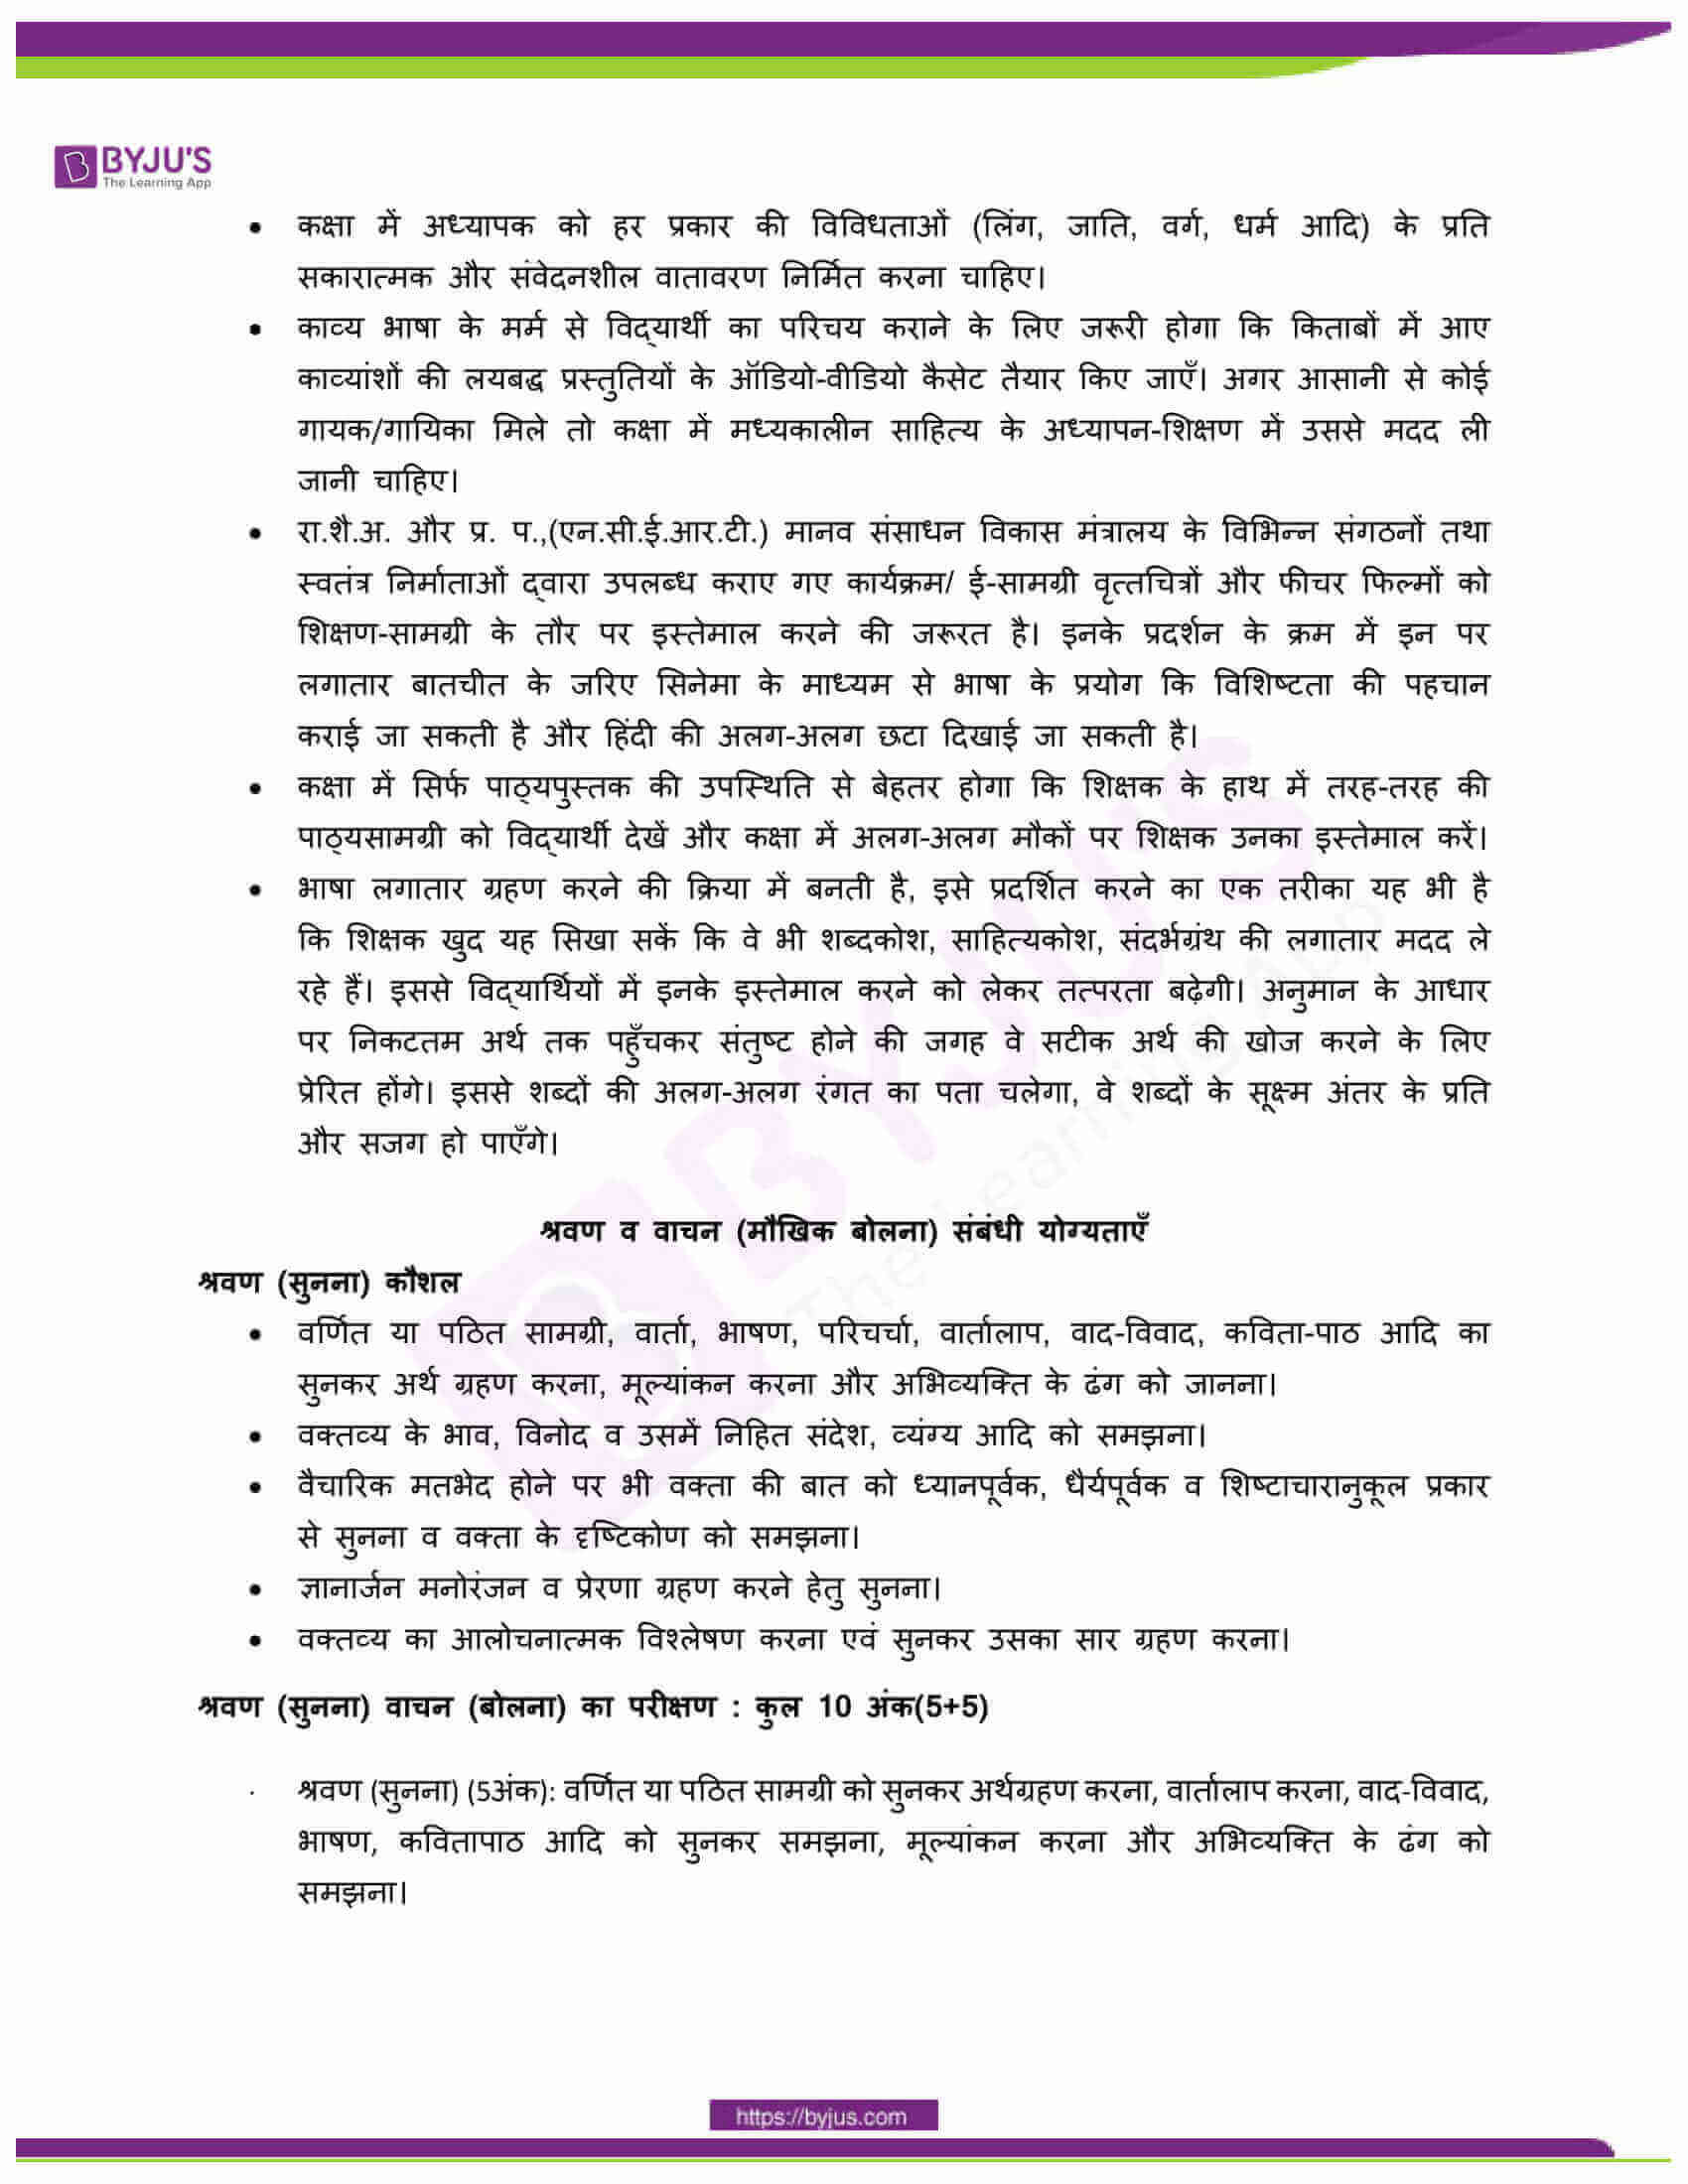 CBSE Class 10 Hindi Course A Revised Syllabus 2020 21 03